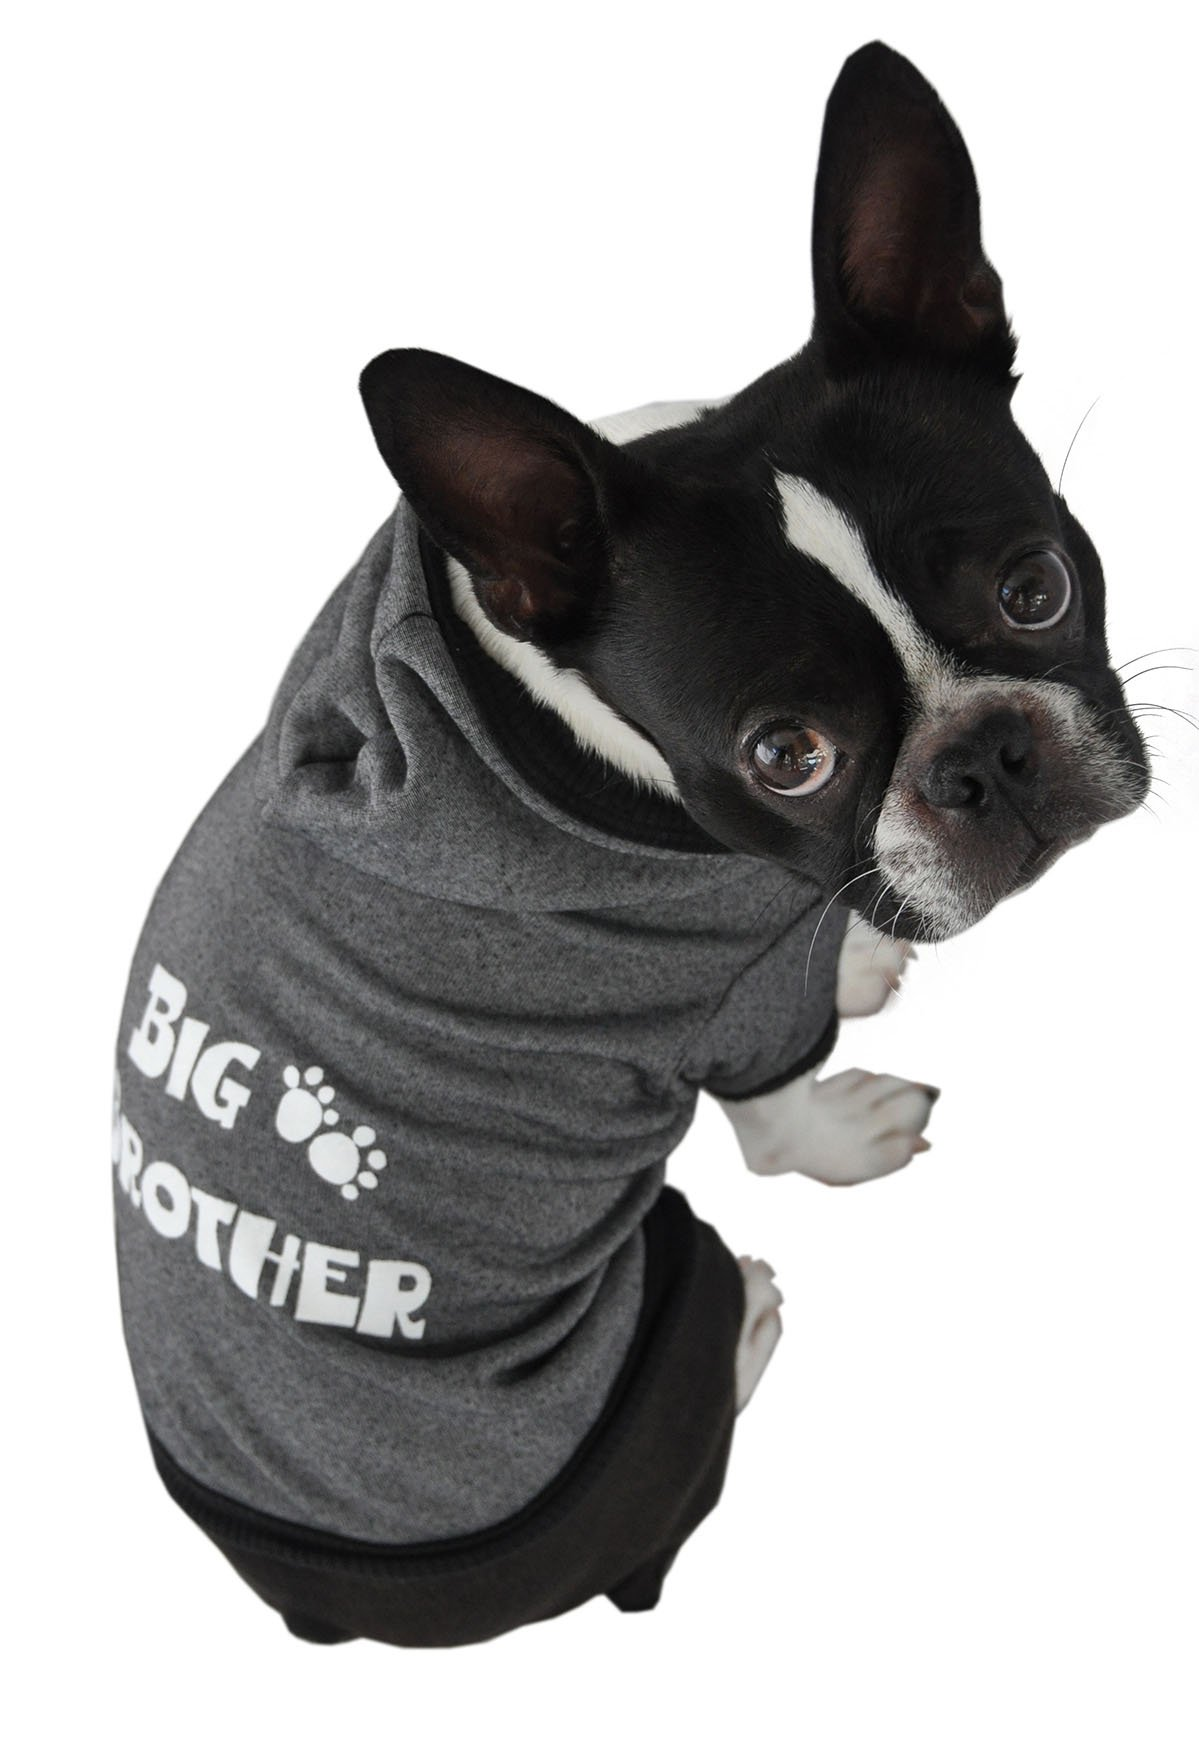 Ruff Ruff and Meow Dog Hoodie, Big Brother, Black, Small by Ruff Ruff and Meow